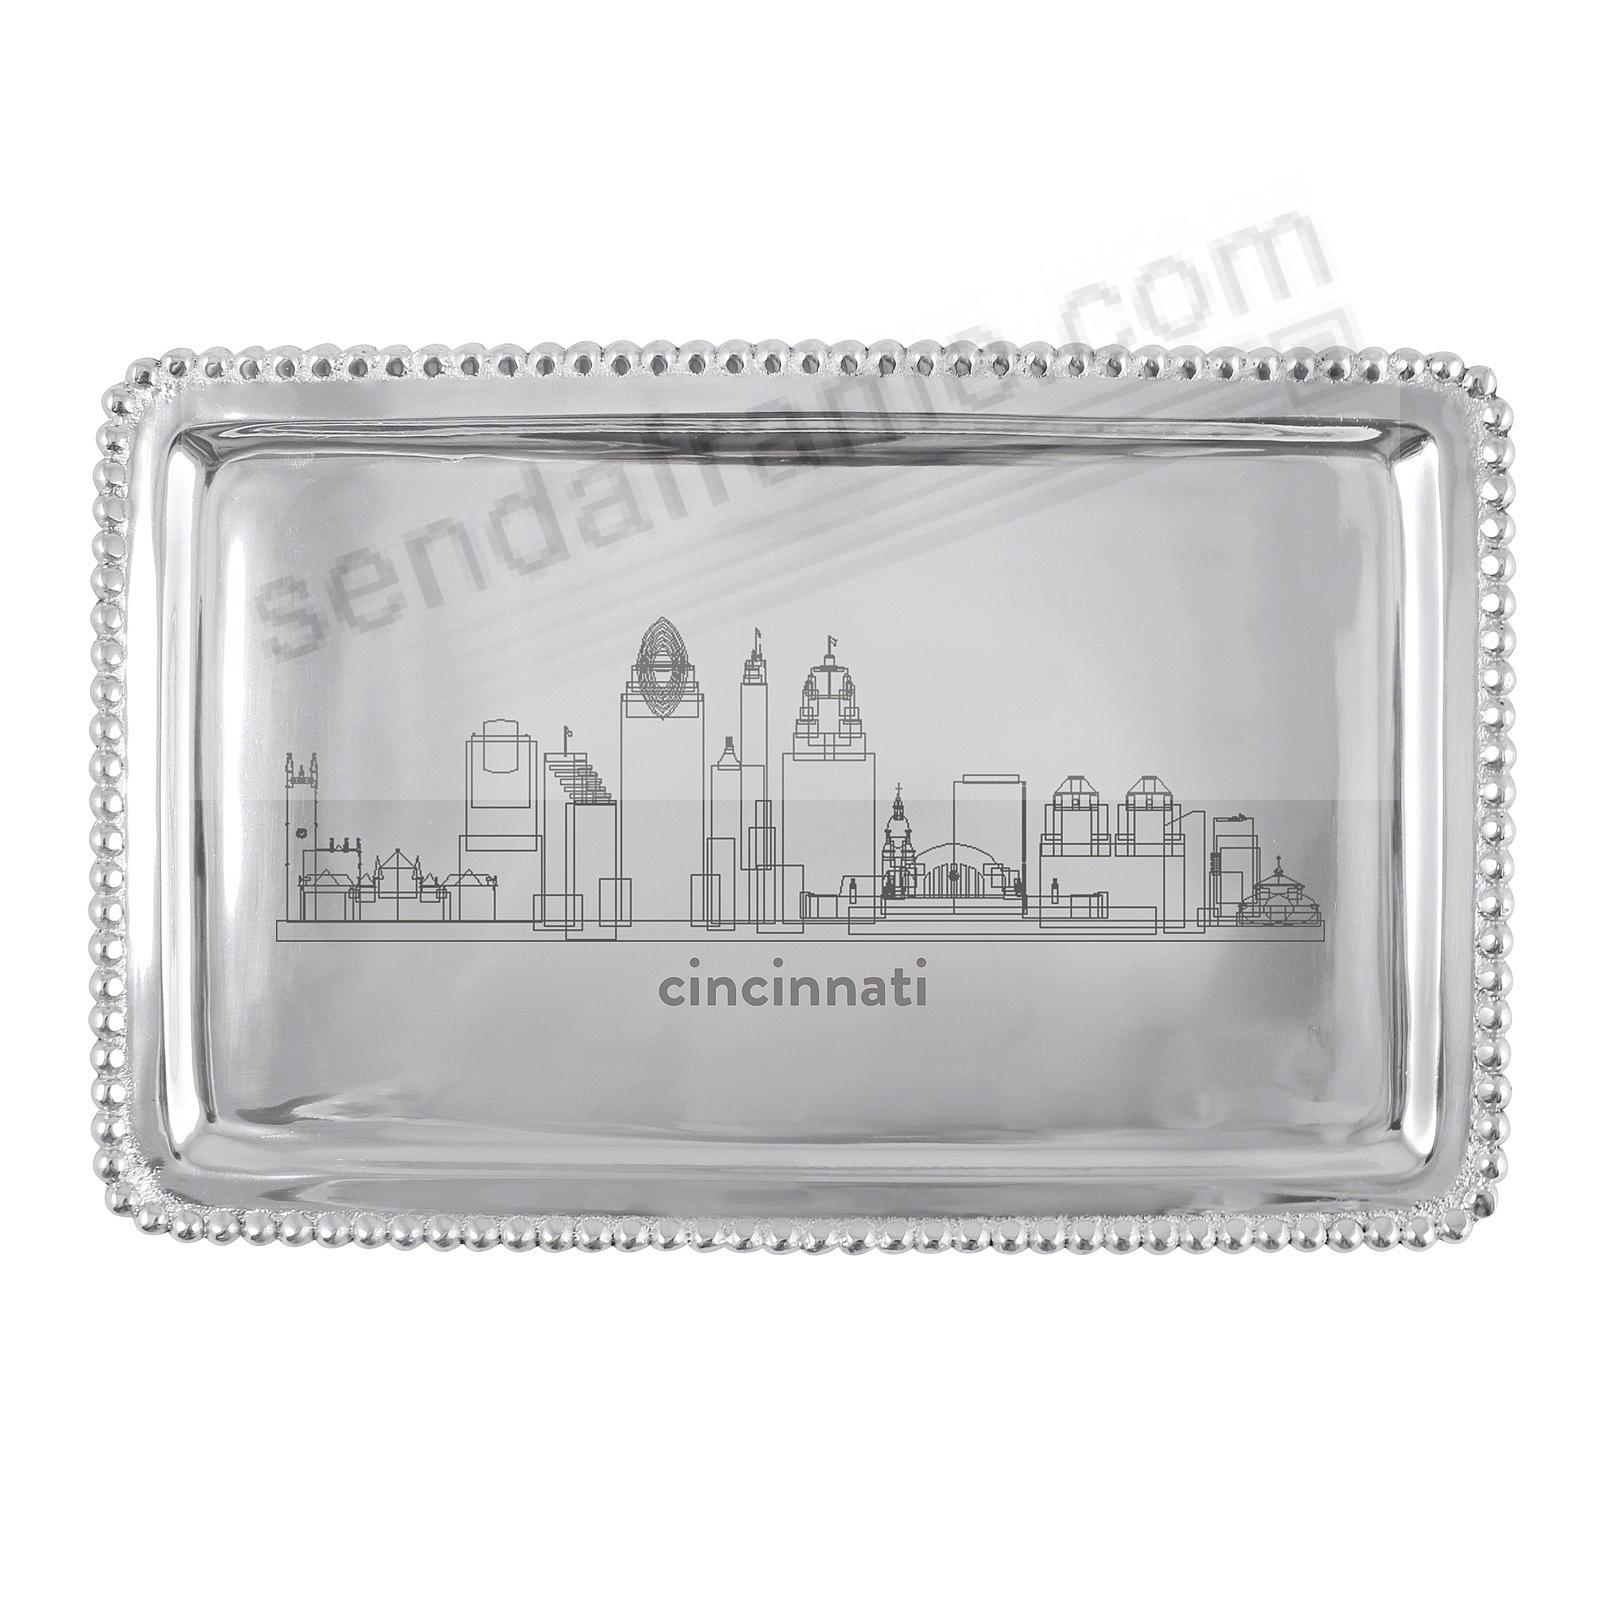 The CINCINNATI-OHIO CITYSCAPE BEADED BUFFET TRAY crafted by Mariposa®